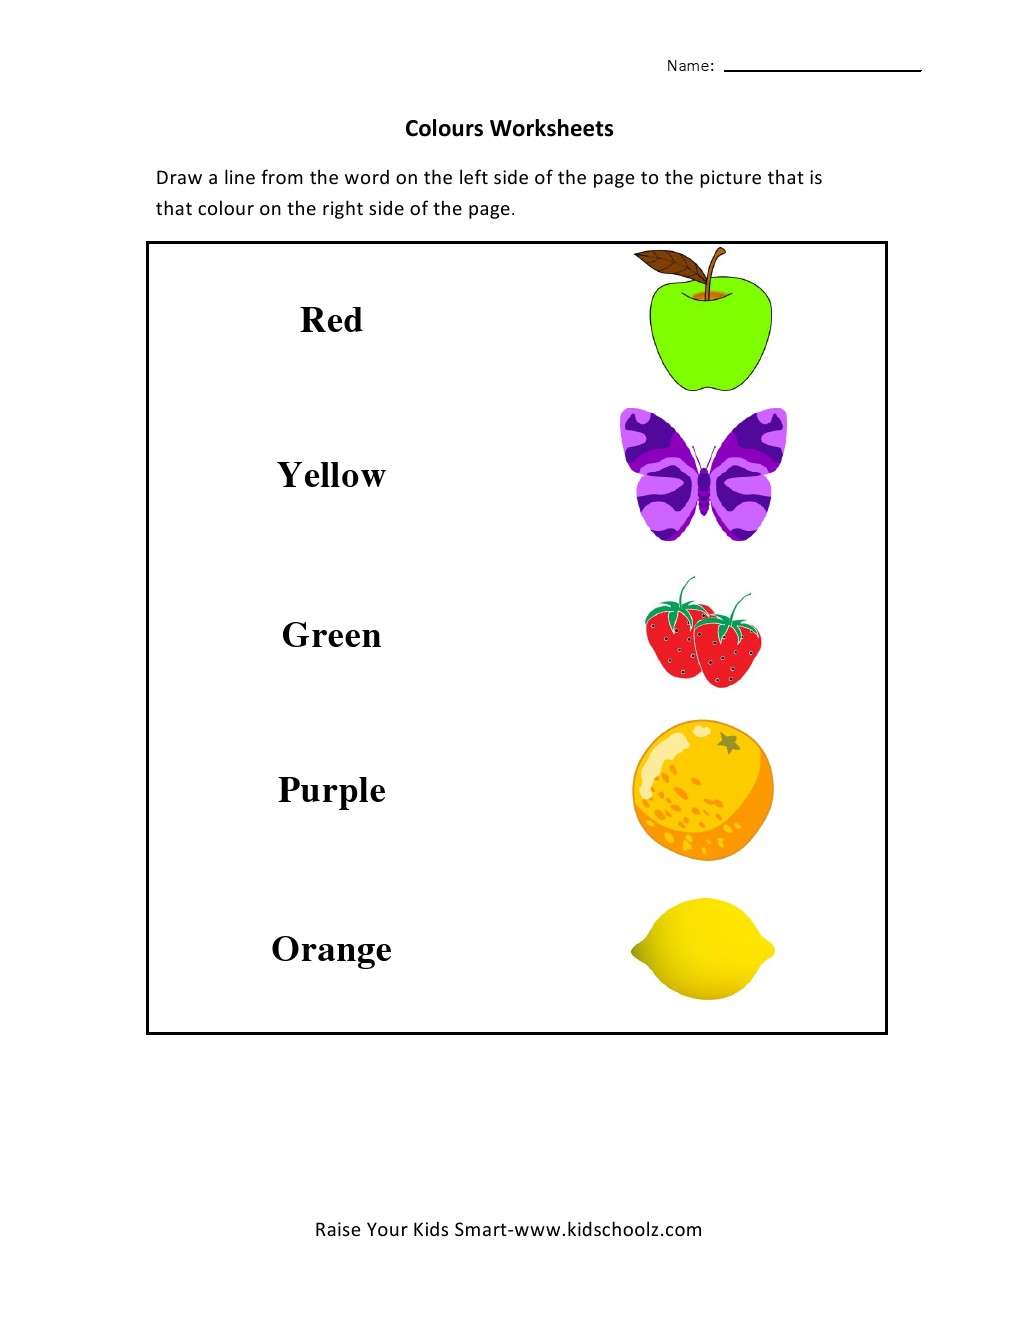 Colours Matching Worksheet - Kidschoolz